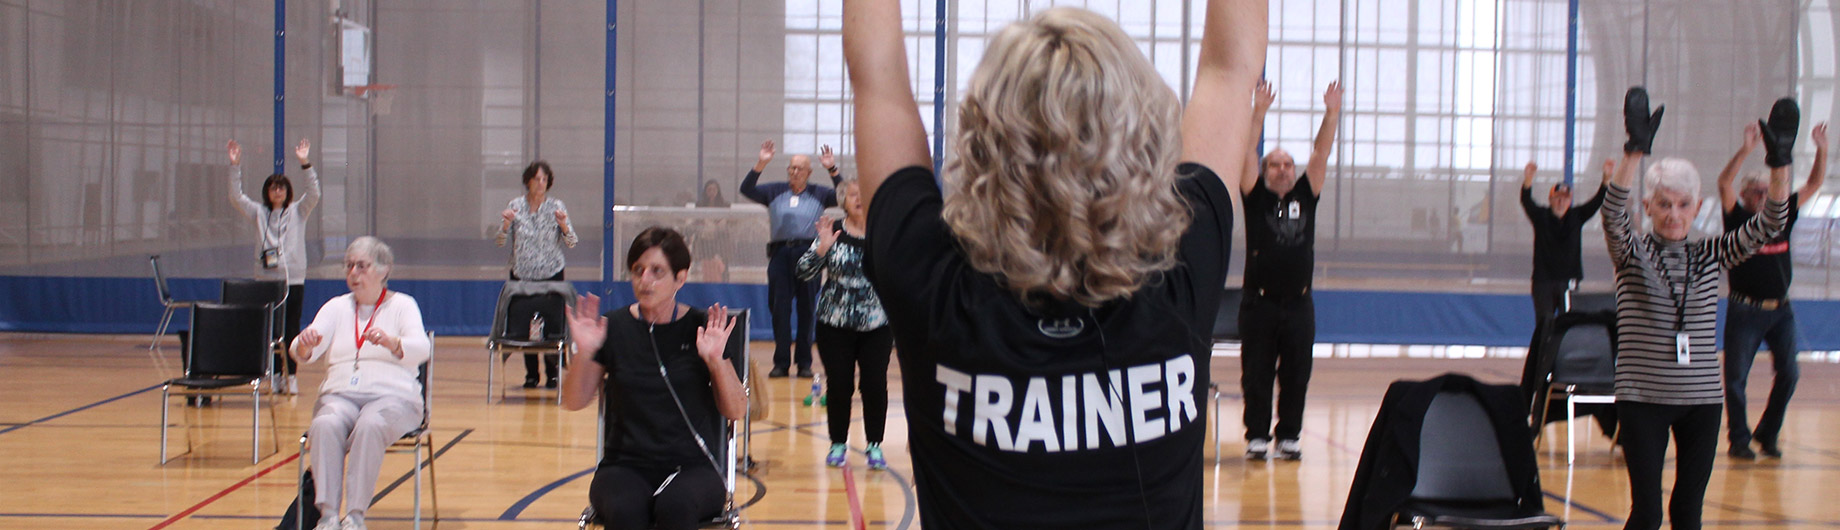 Abilities Centre trainer leads participants through a varied exercise routine